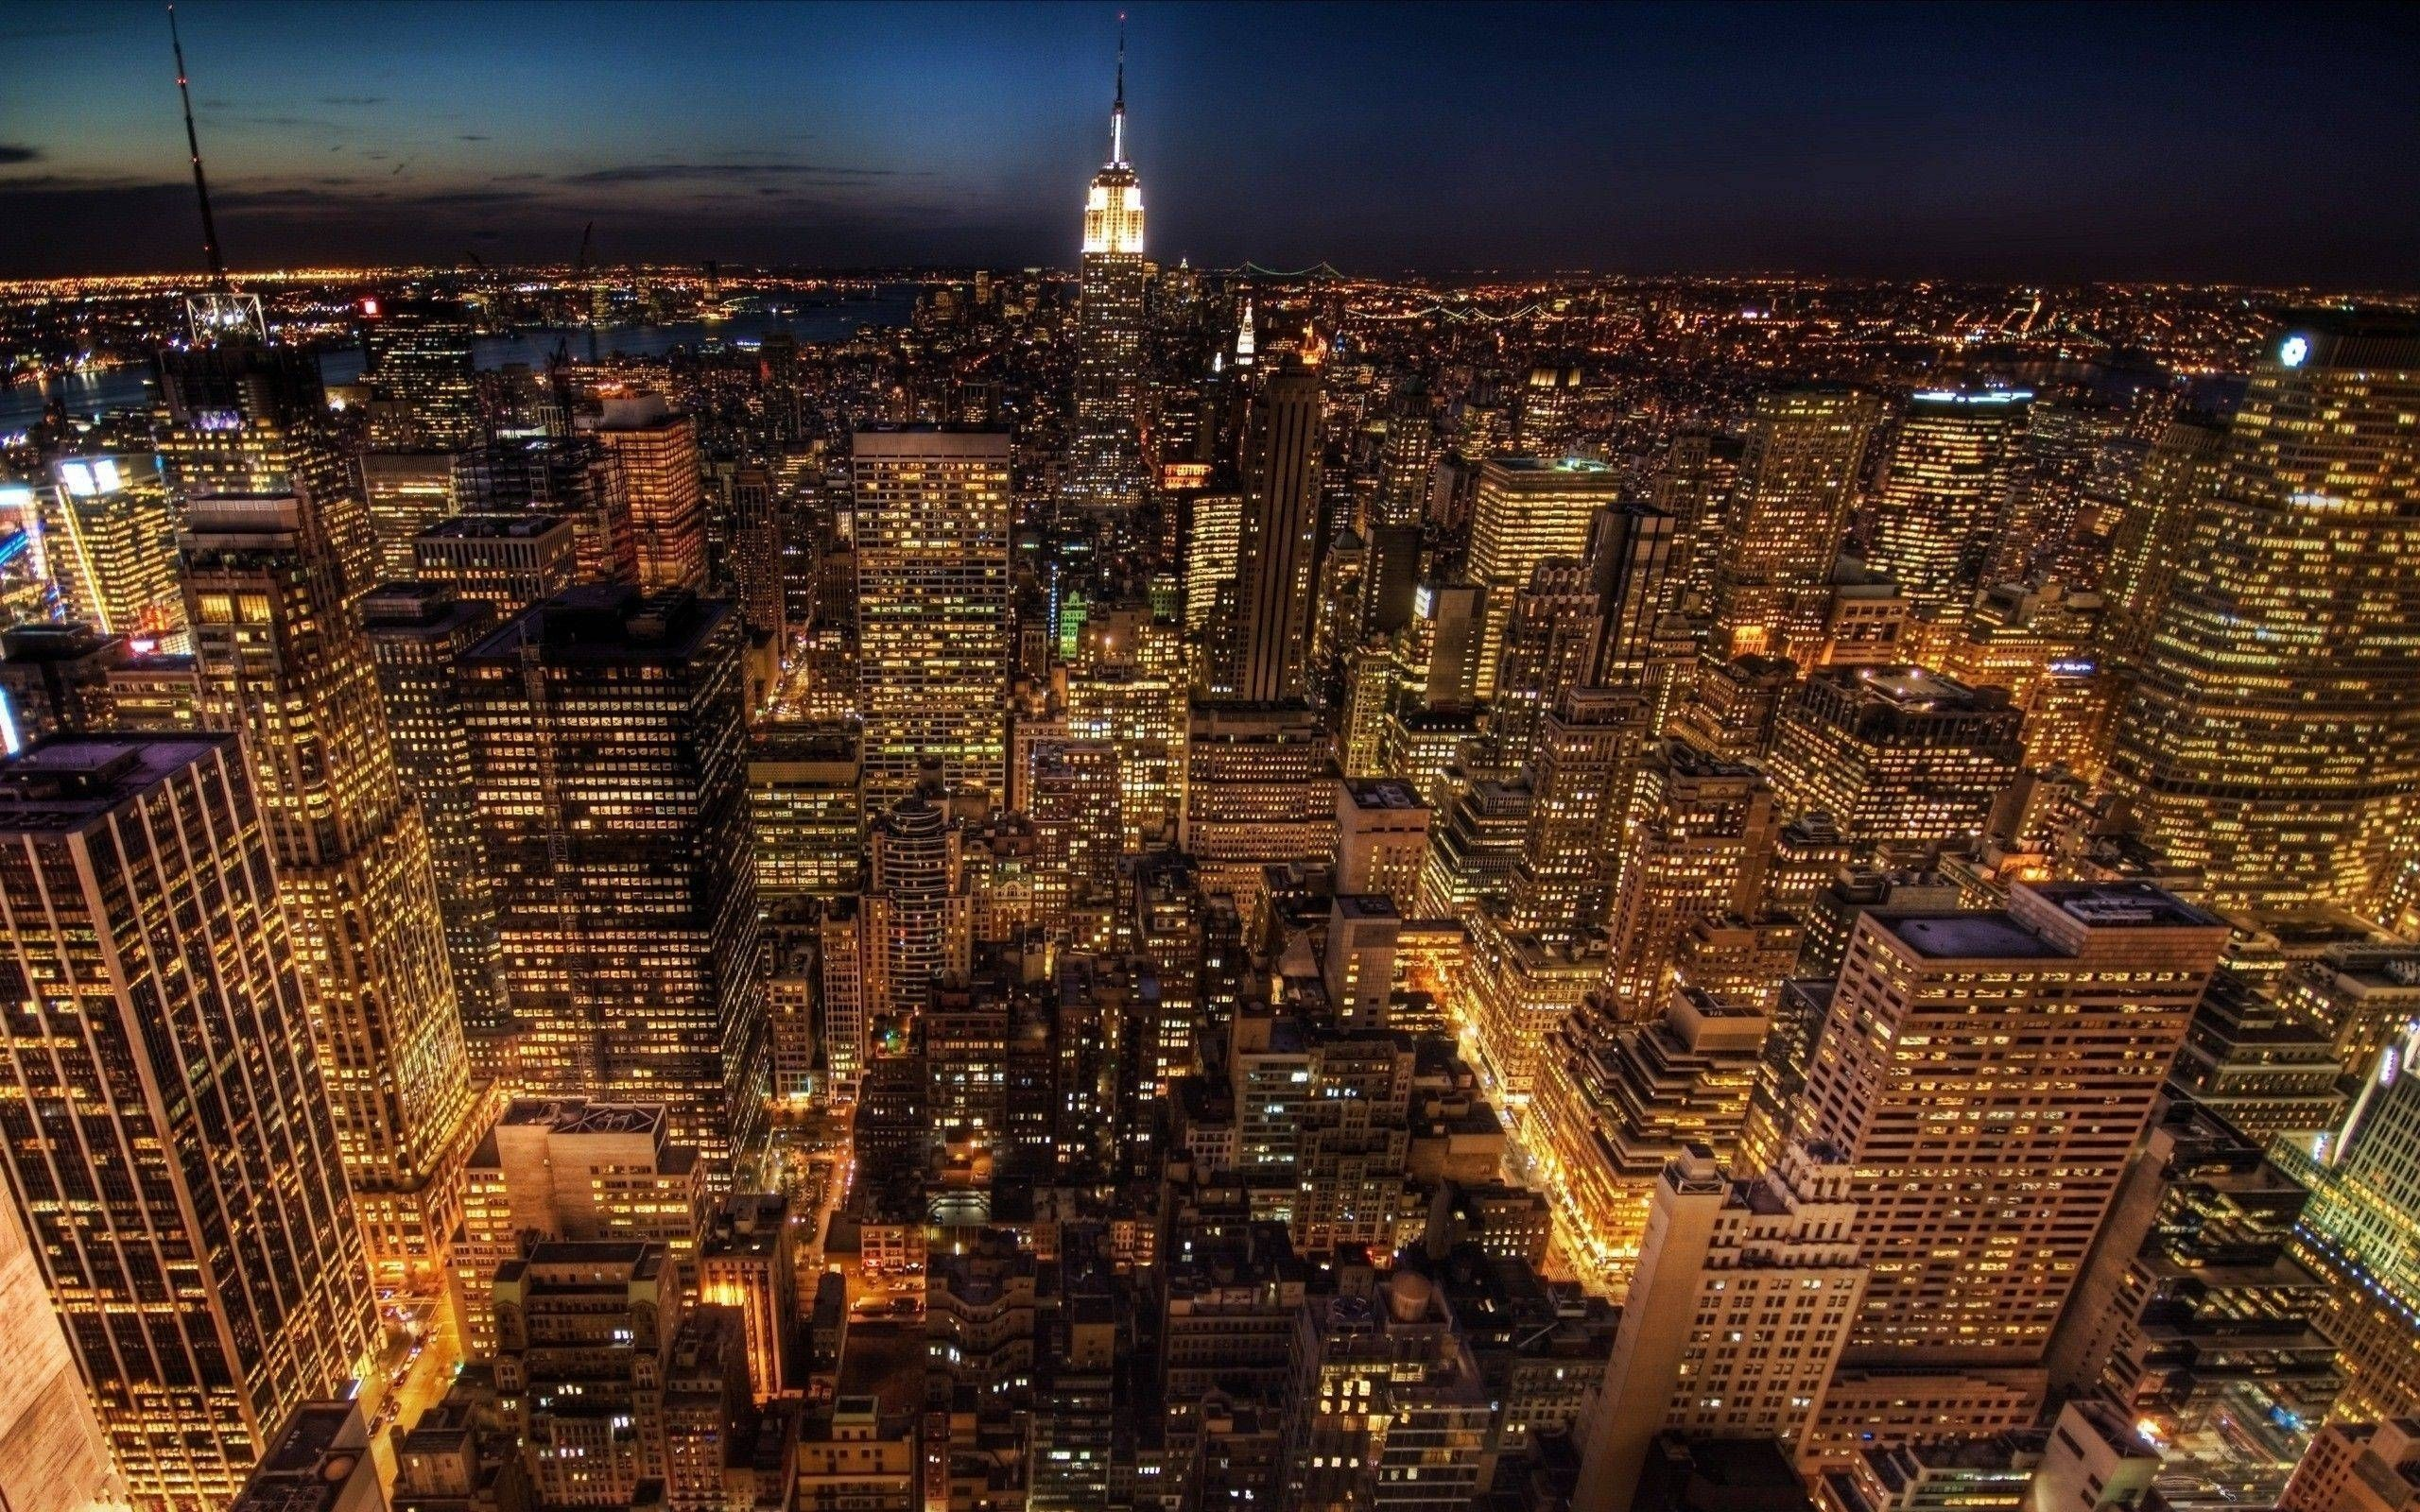 2560x1600 10 Best New York City Night Hd Wallpaper FULL HD 1080p For PC Background